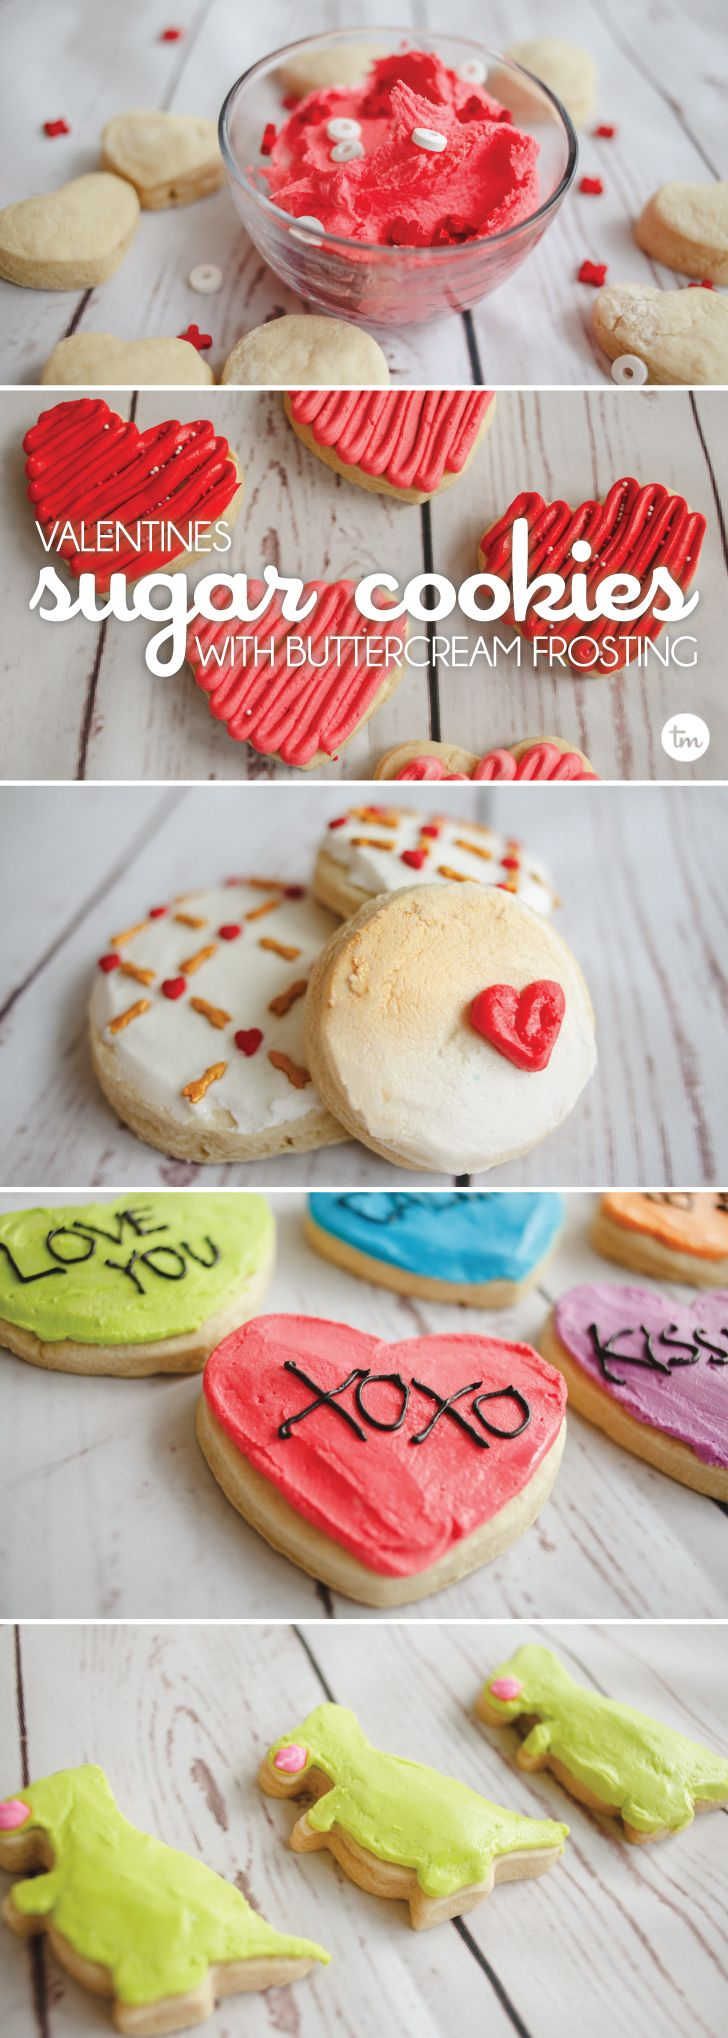 Valentine's Sugar Cookies with Buttercream Frosting | These adorable cookies are proving that buttercream can be as pretty as royal icing! via @todaysmama